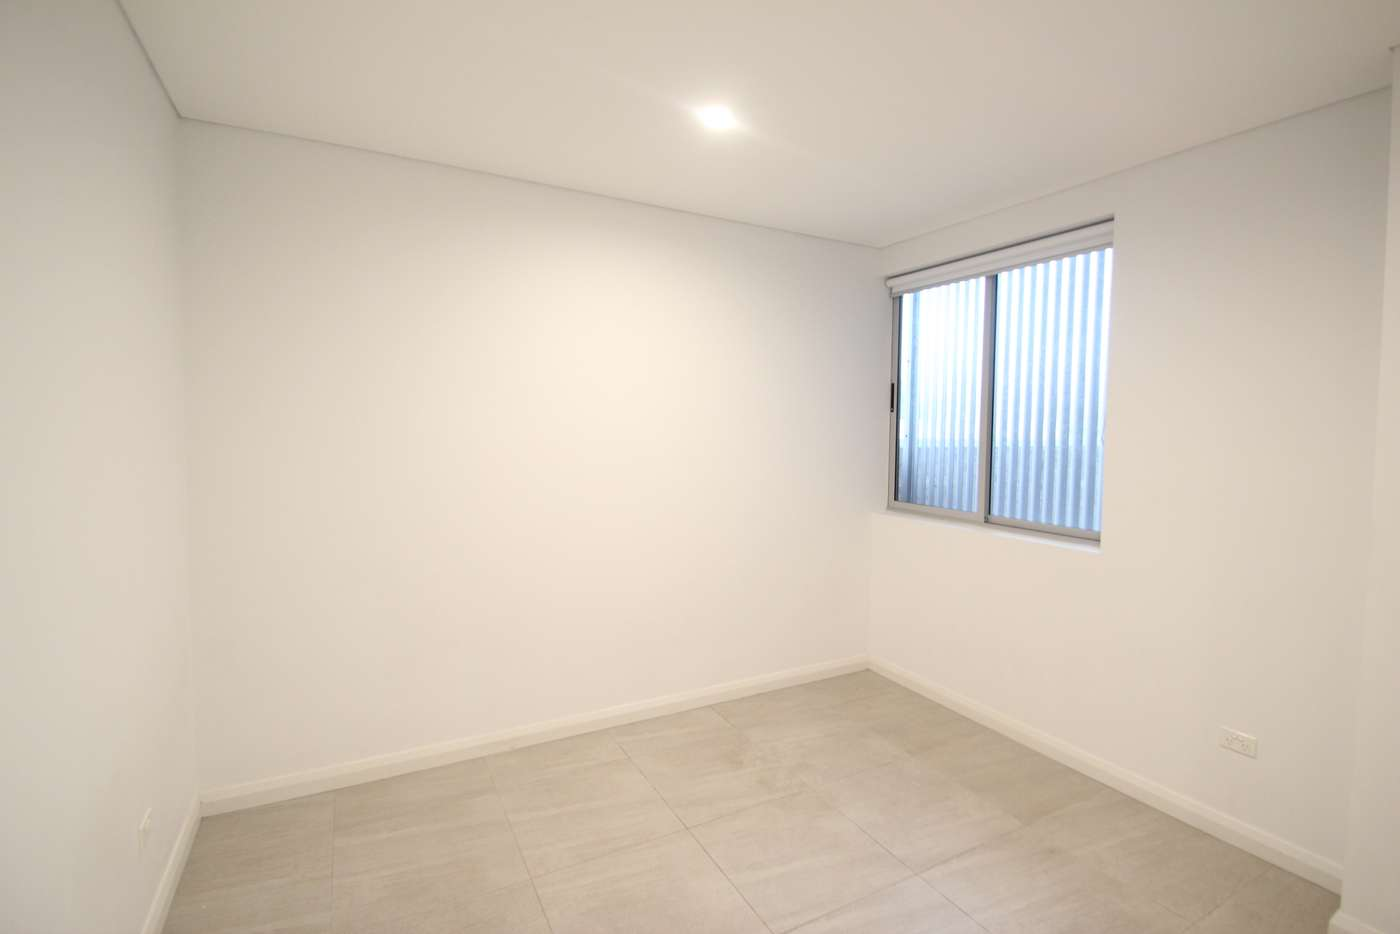 Seventh view of Homely unit listing, 3/110 Parramatta Road, Camperdown NSW 2050